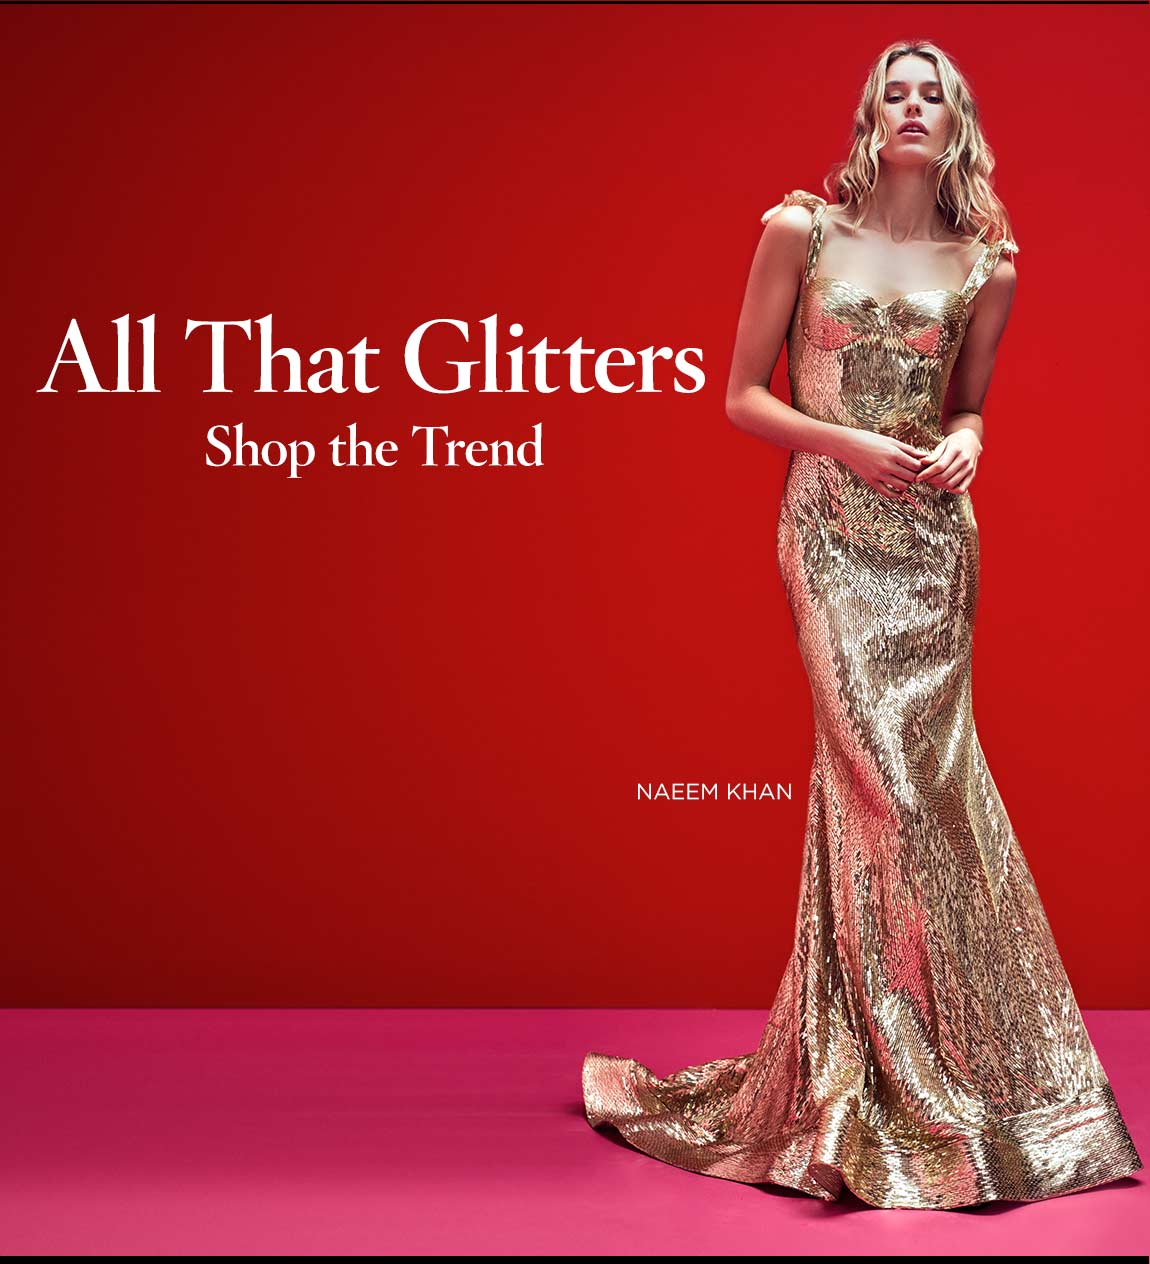 Trend: All That Glitters